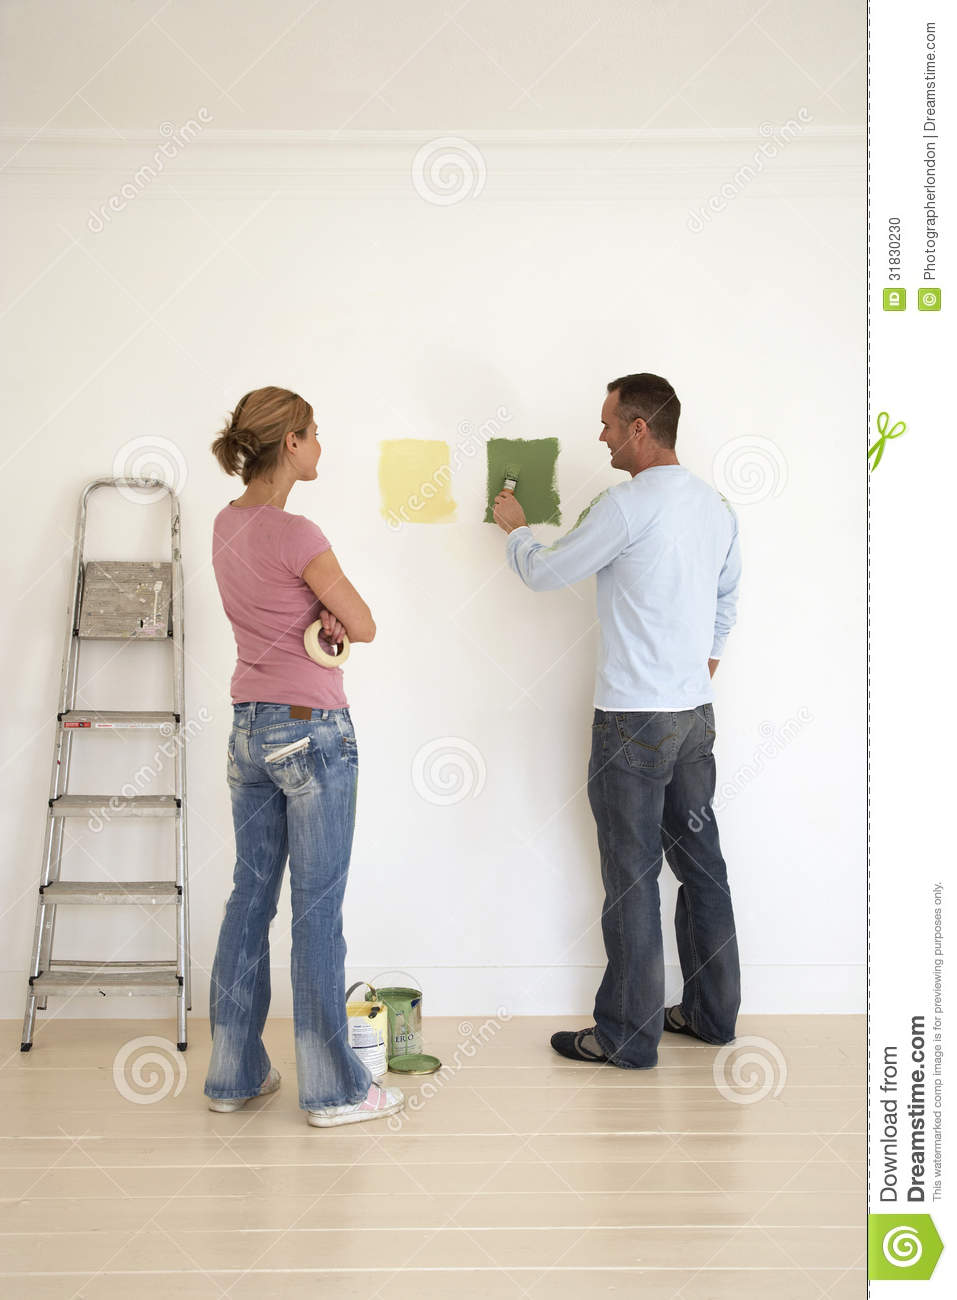 Woman Watch Man Testing Paint Colors On Wall Stock Photo